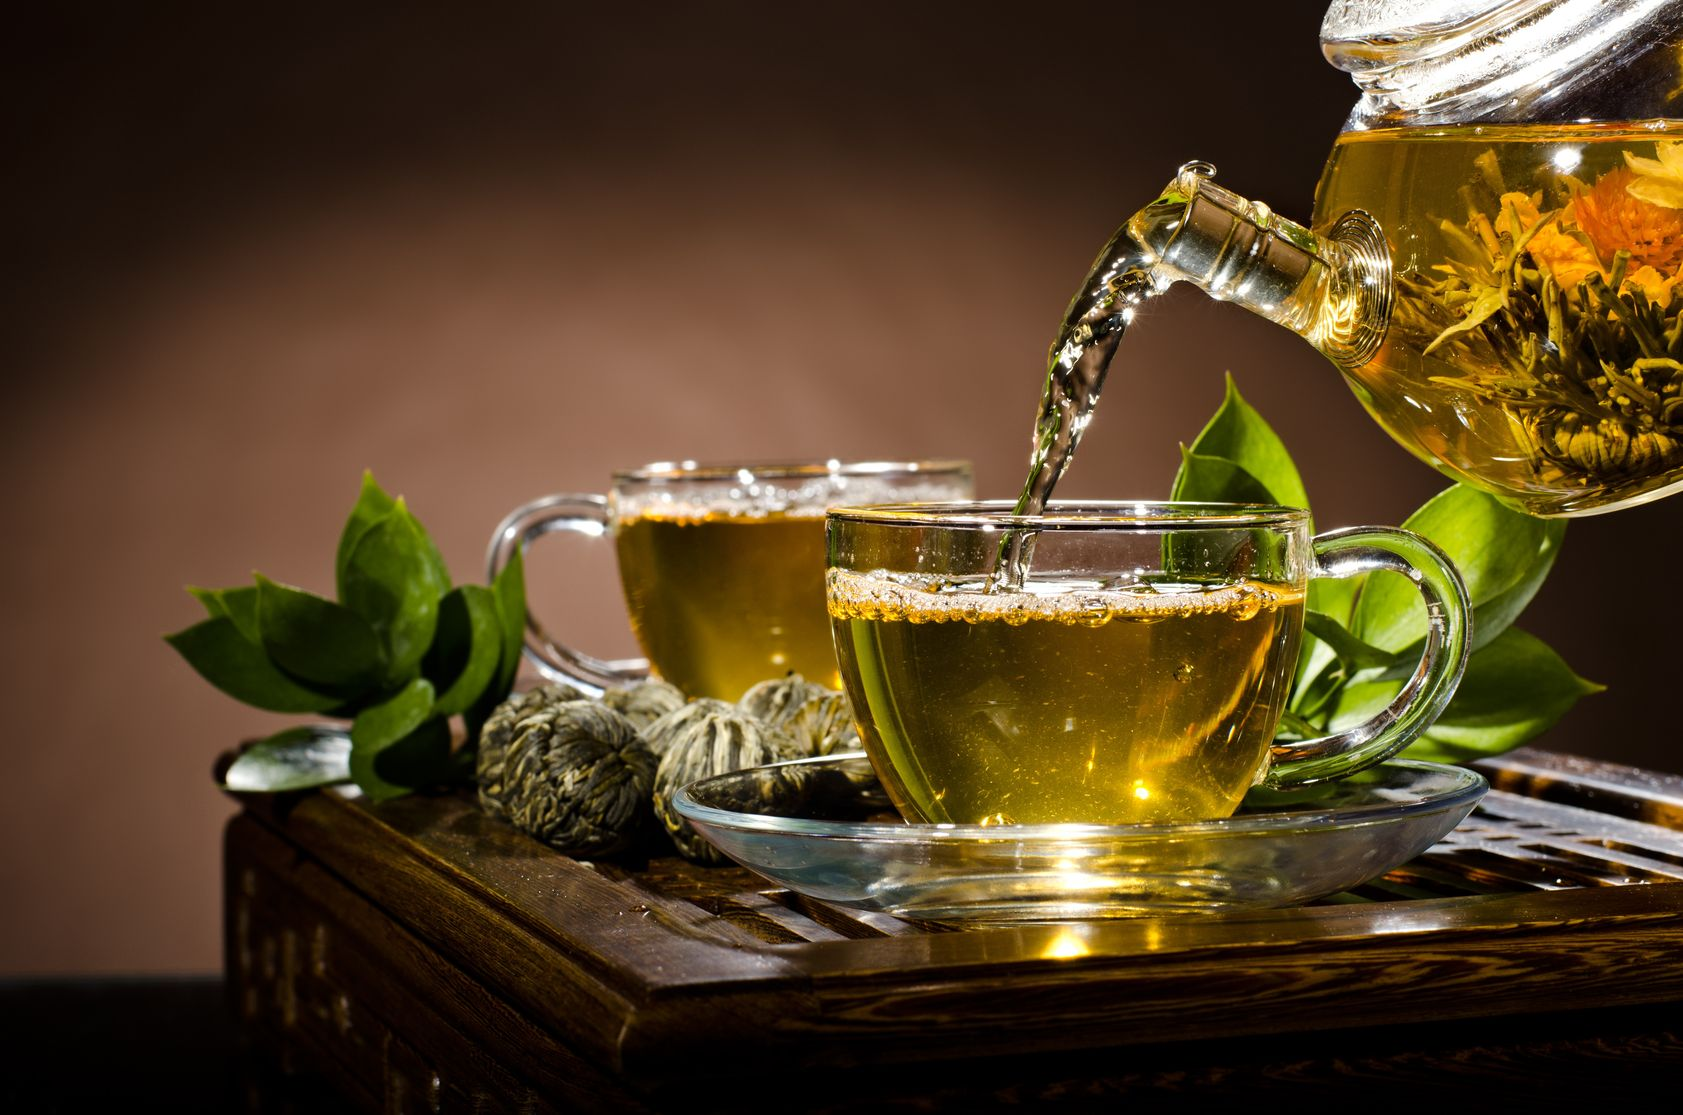 green tea prevents heart disease and increases longevity